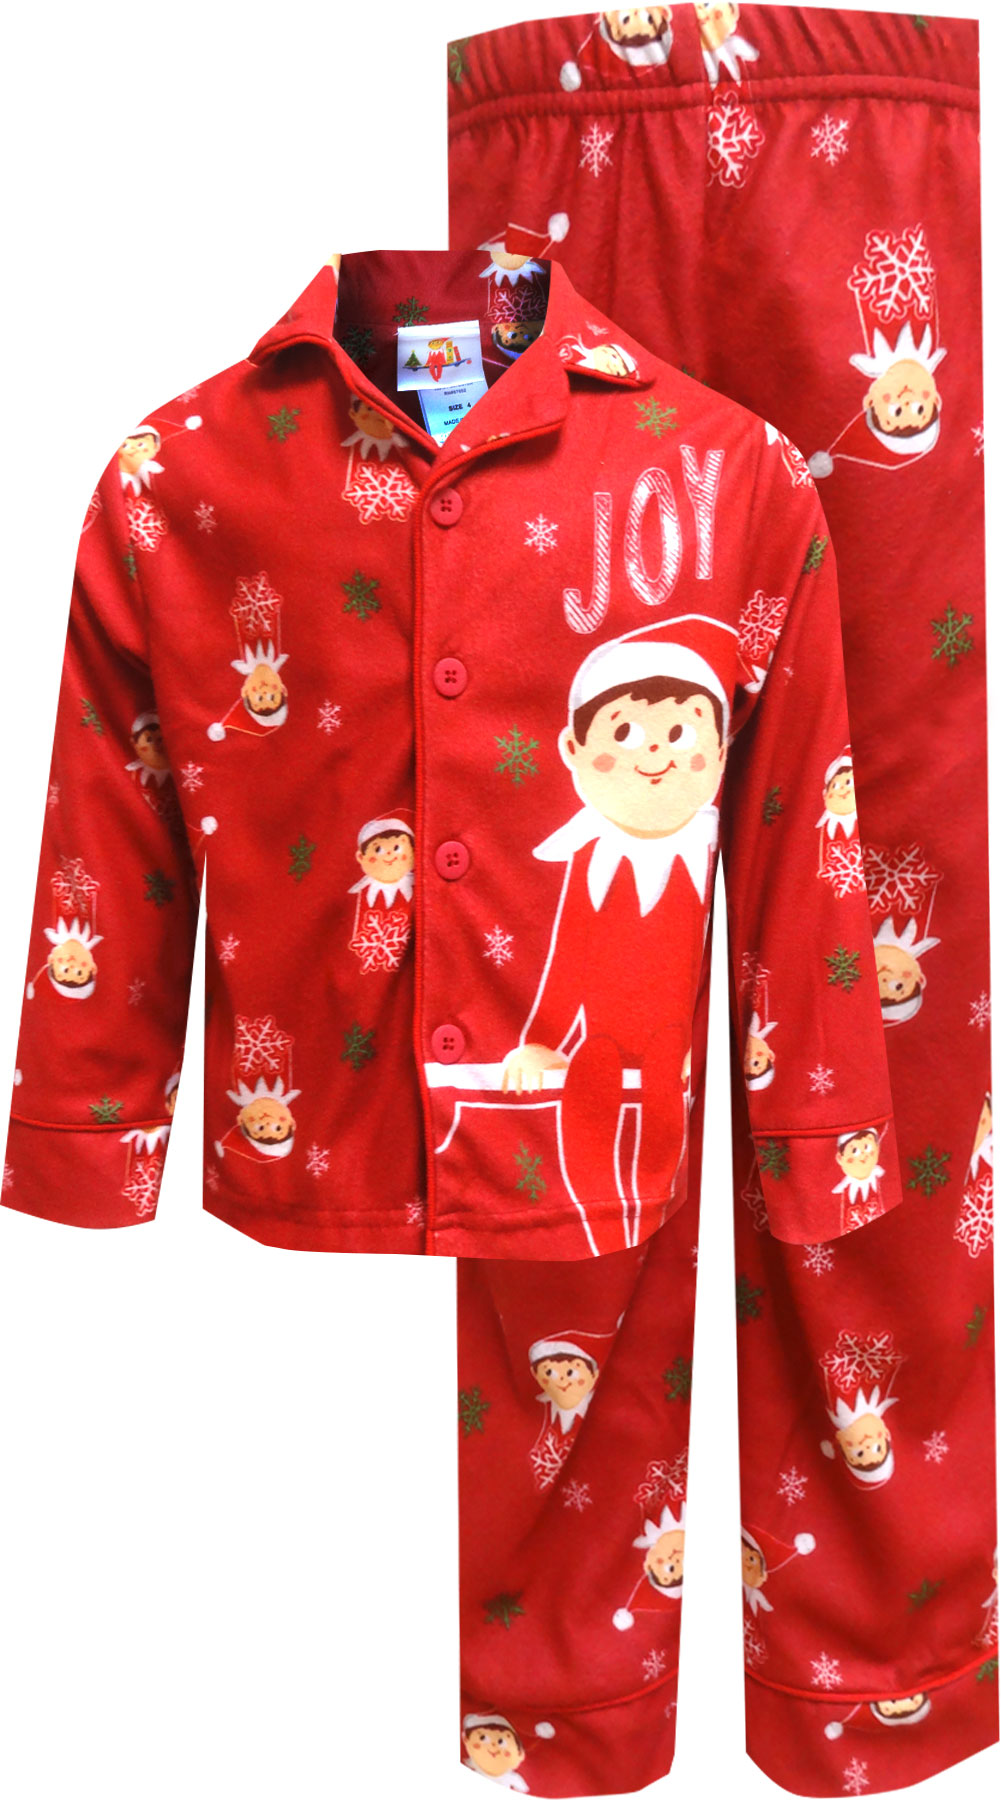 Image of Elf on the Shelf Red Christmas Pajamas for boys